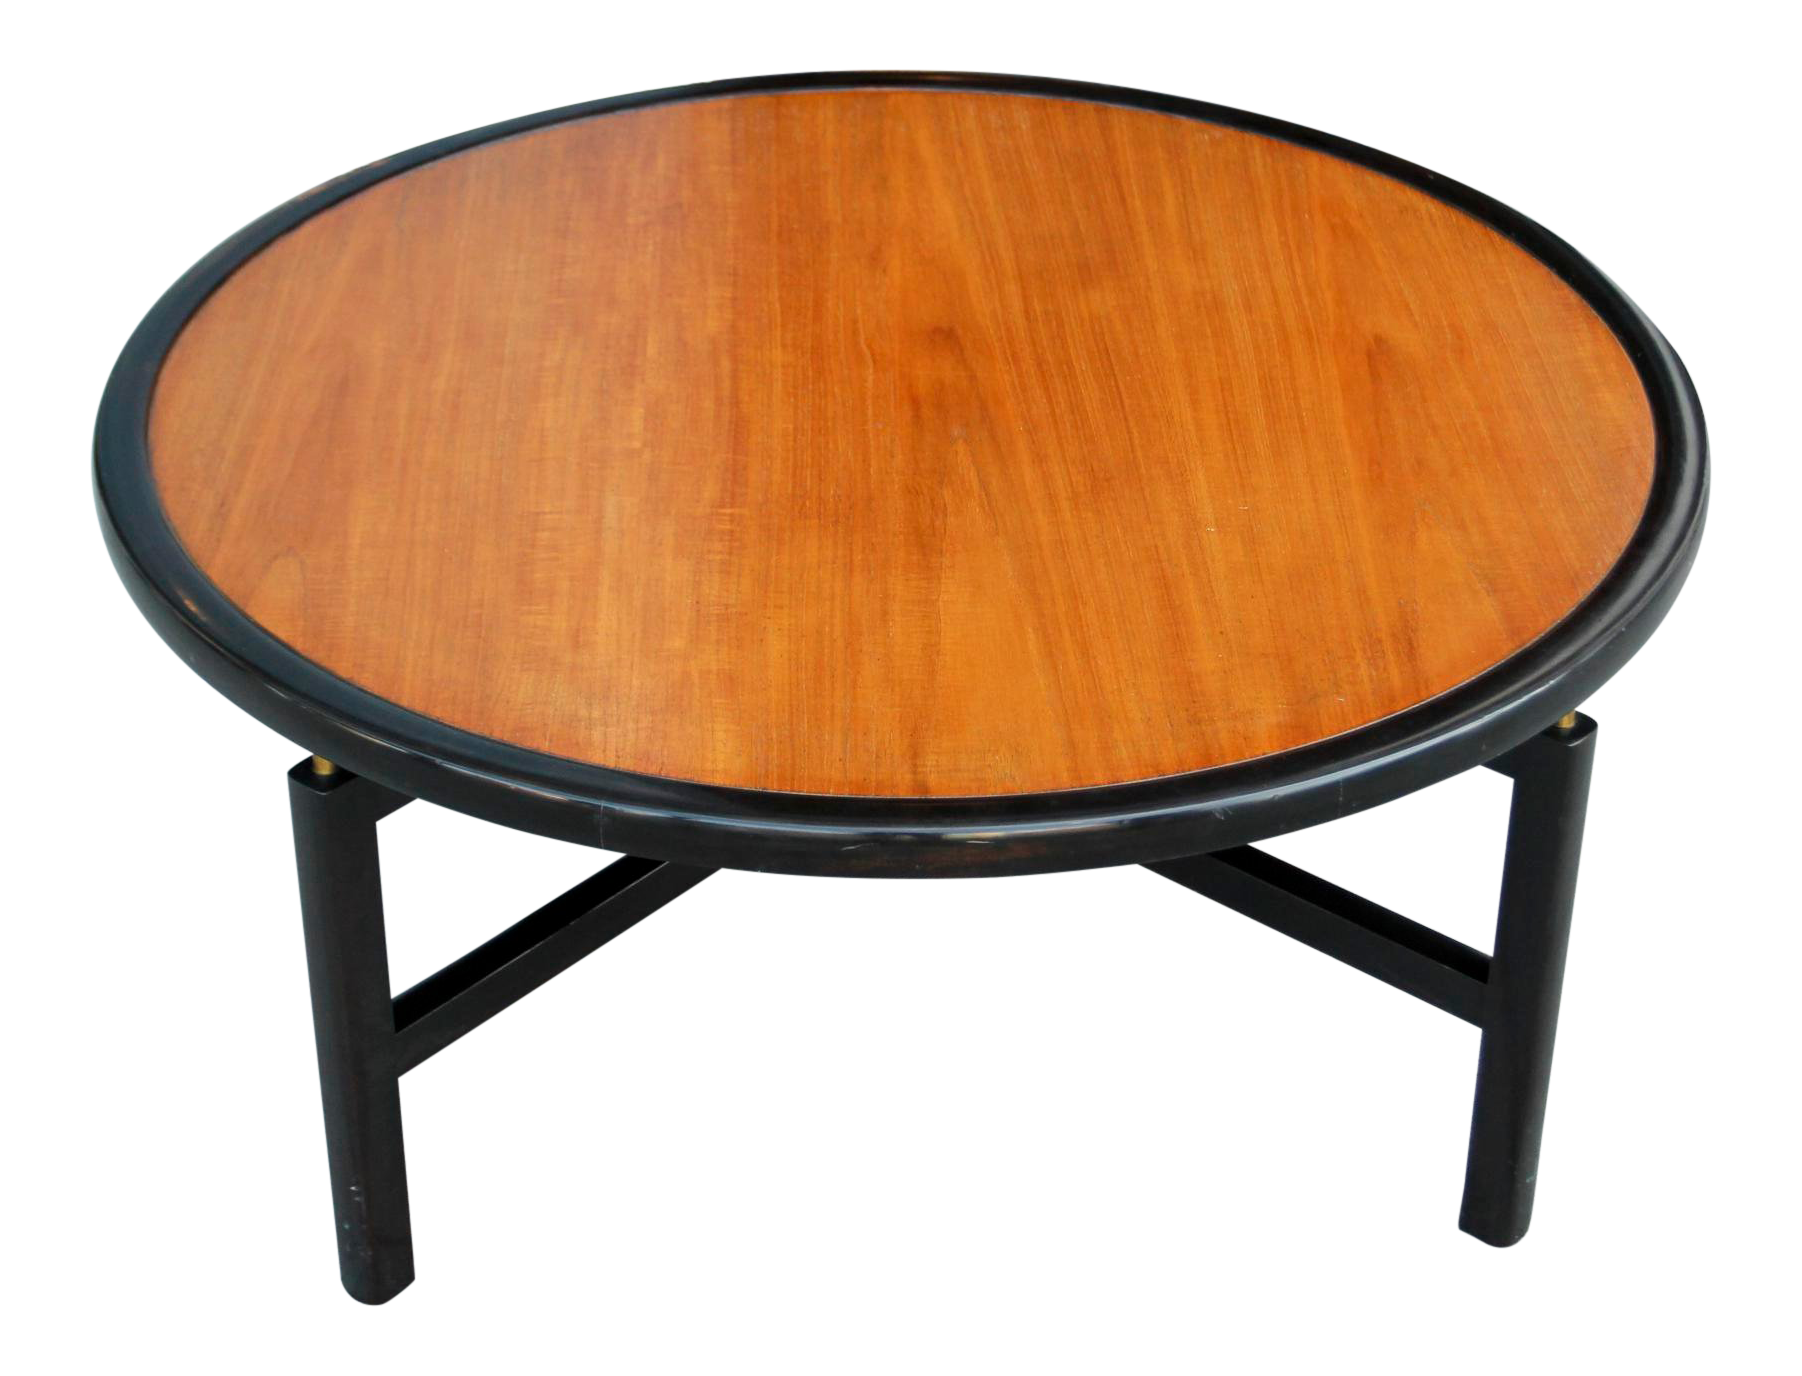 1960s Mid Century Modern Baker Furnitue Round Coffee Table